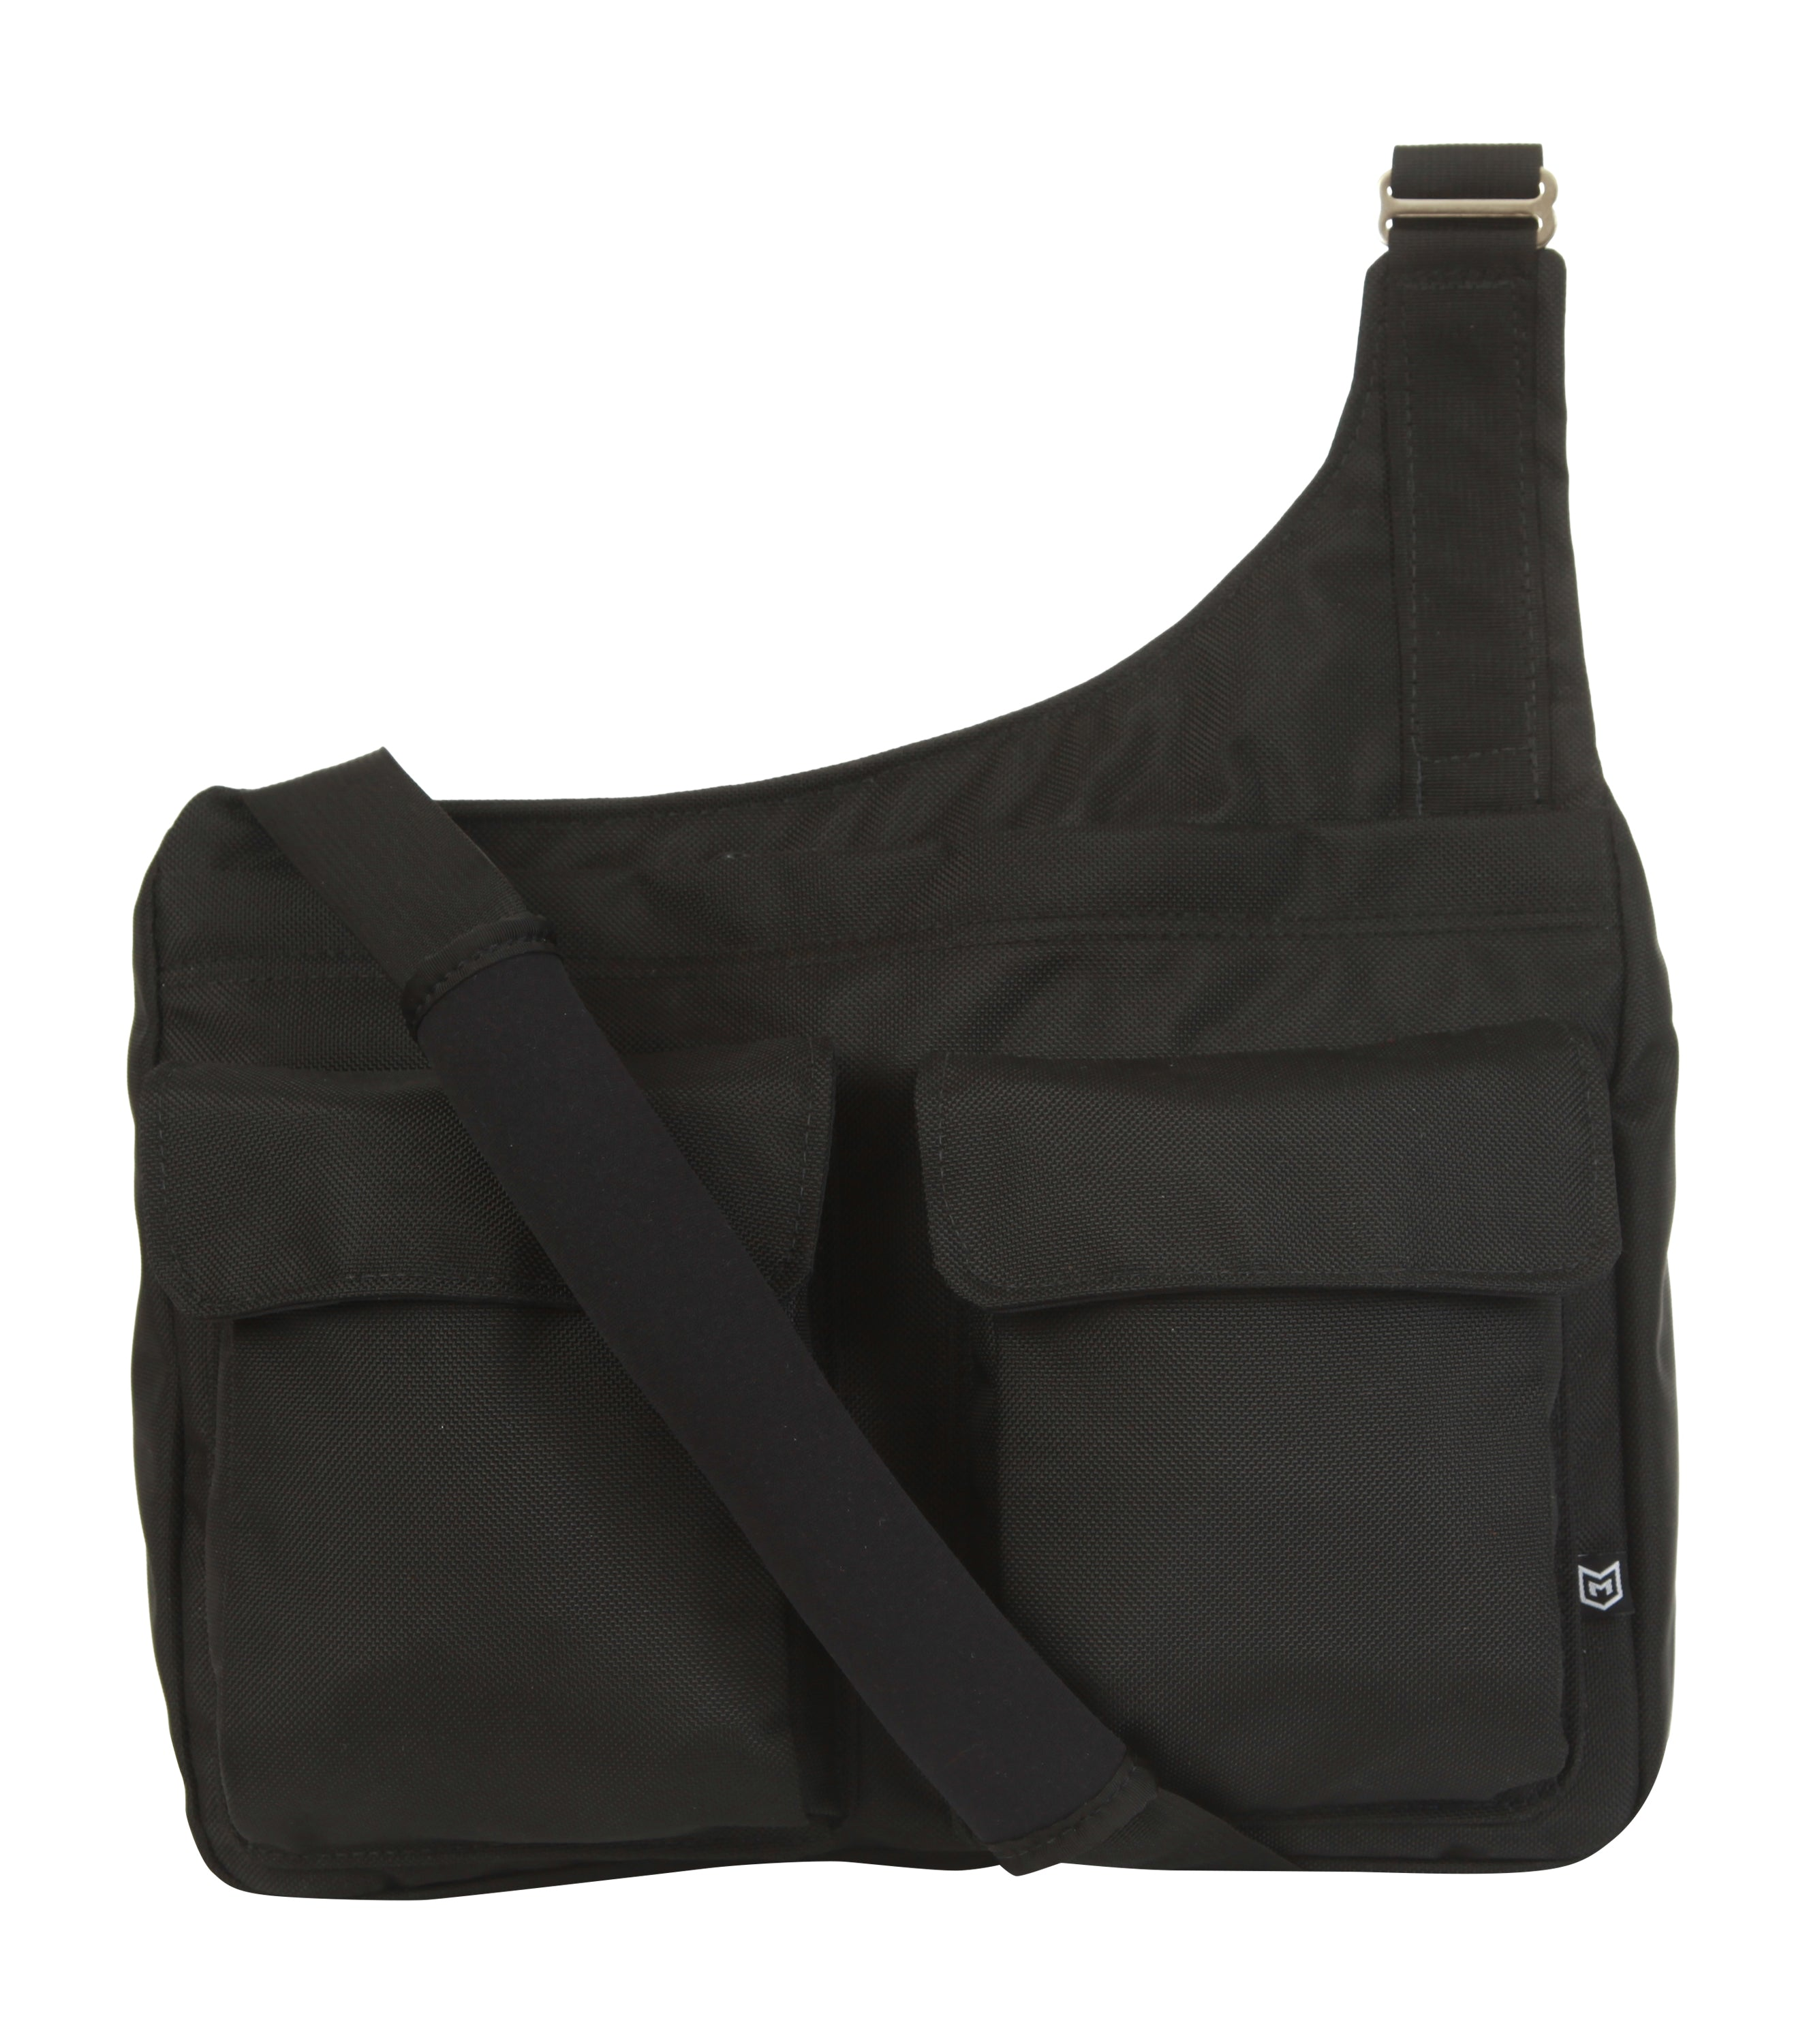 Õde Bag - Black